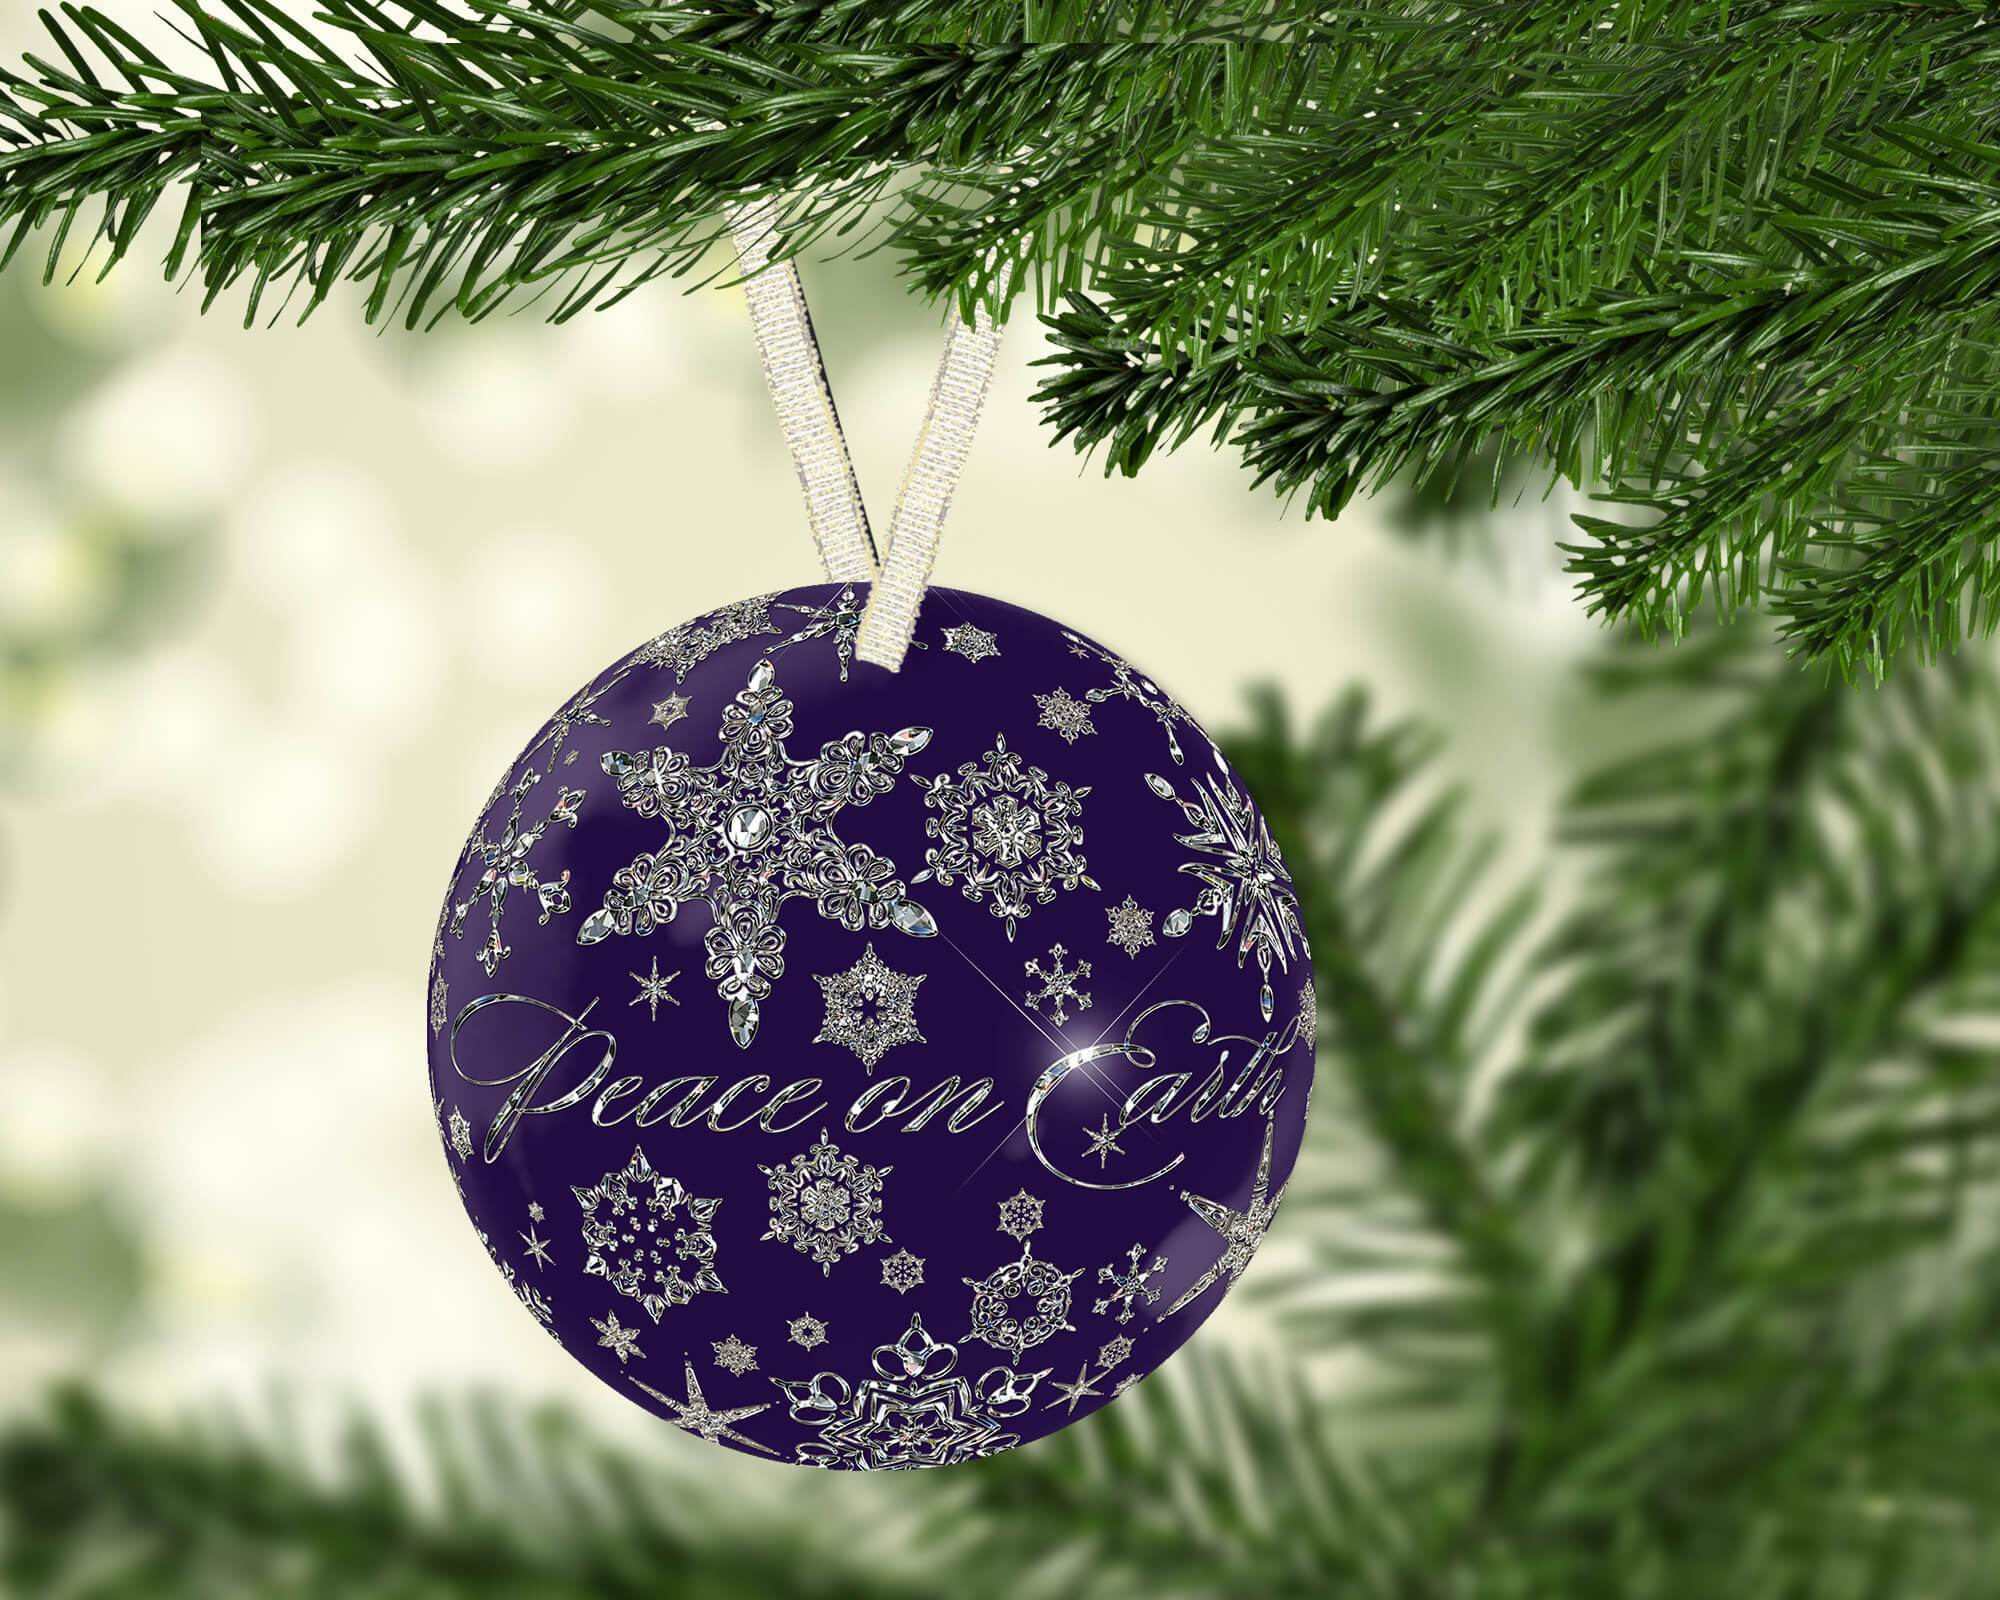 PEACE ON EARTH HOLIDAY ORNAMENT